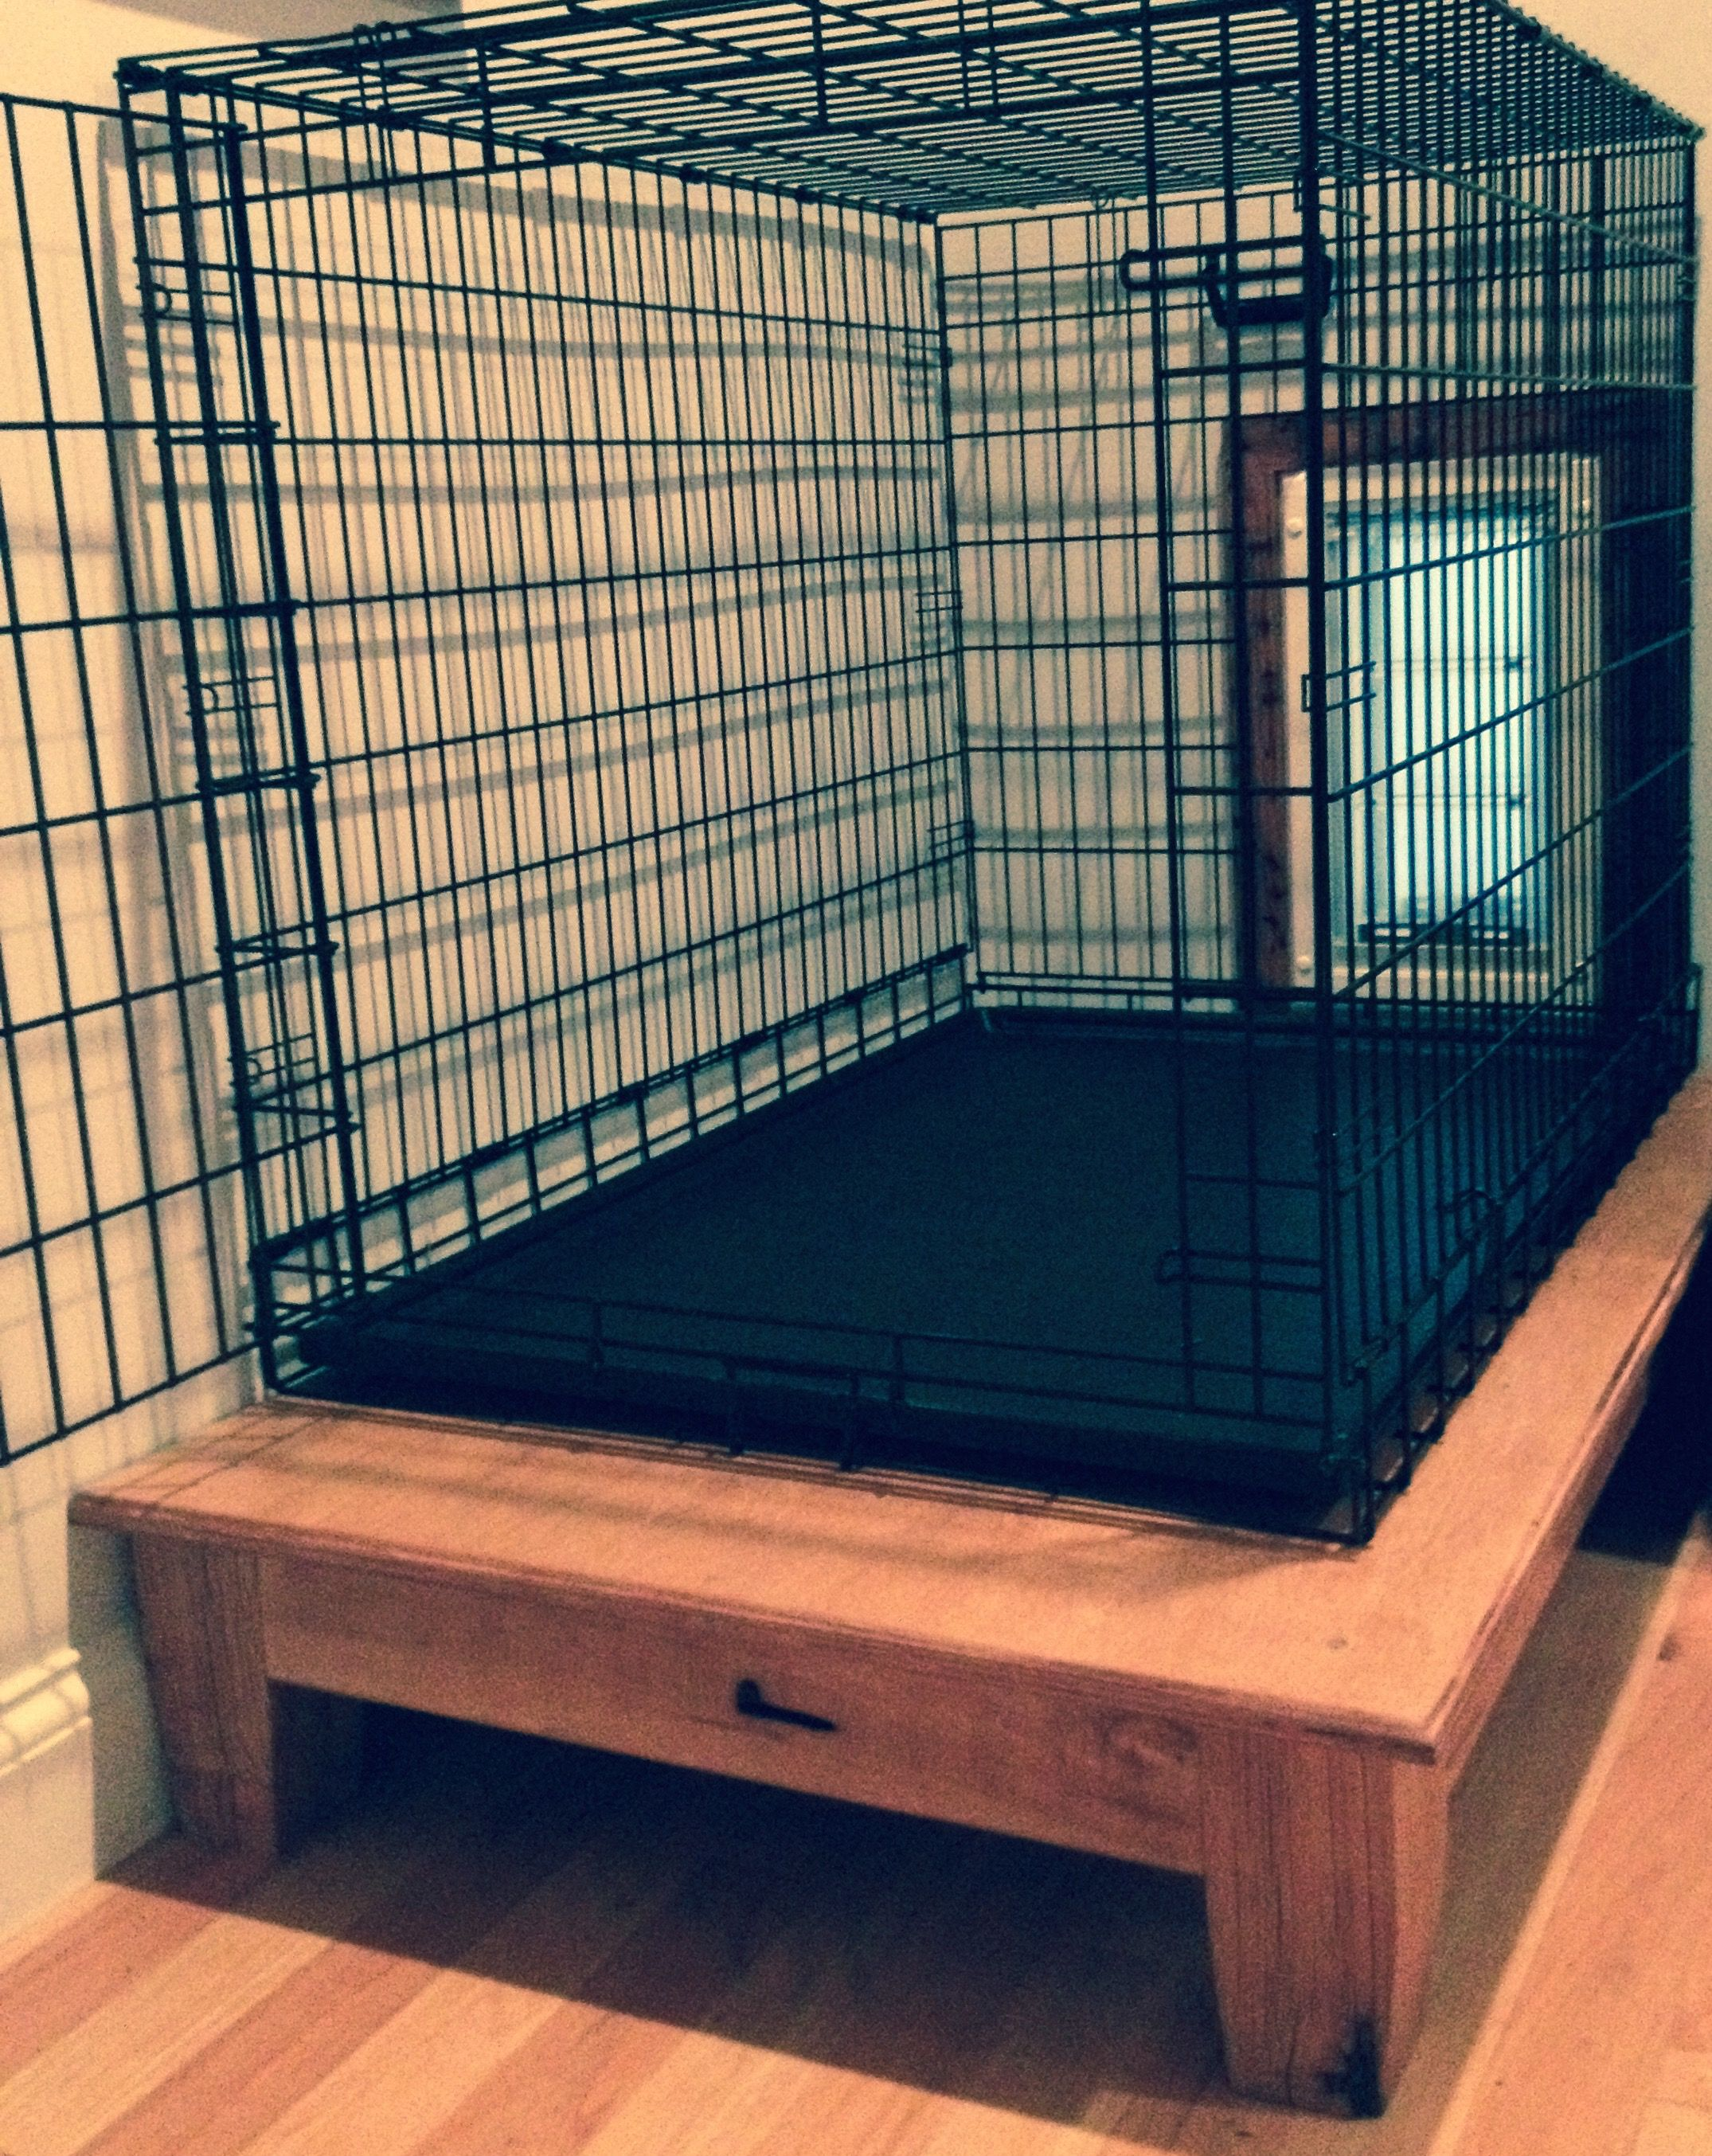 Hand Made Elevated Dog Crate Platform By Appalachian Framery Custommade Com